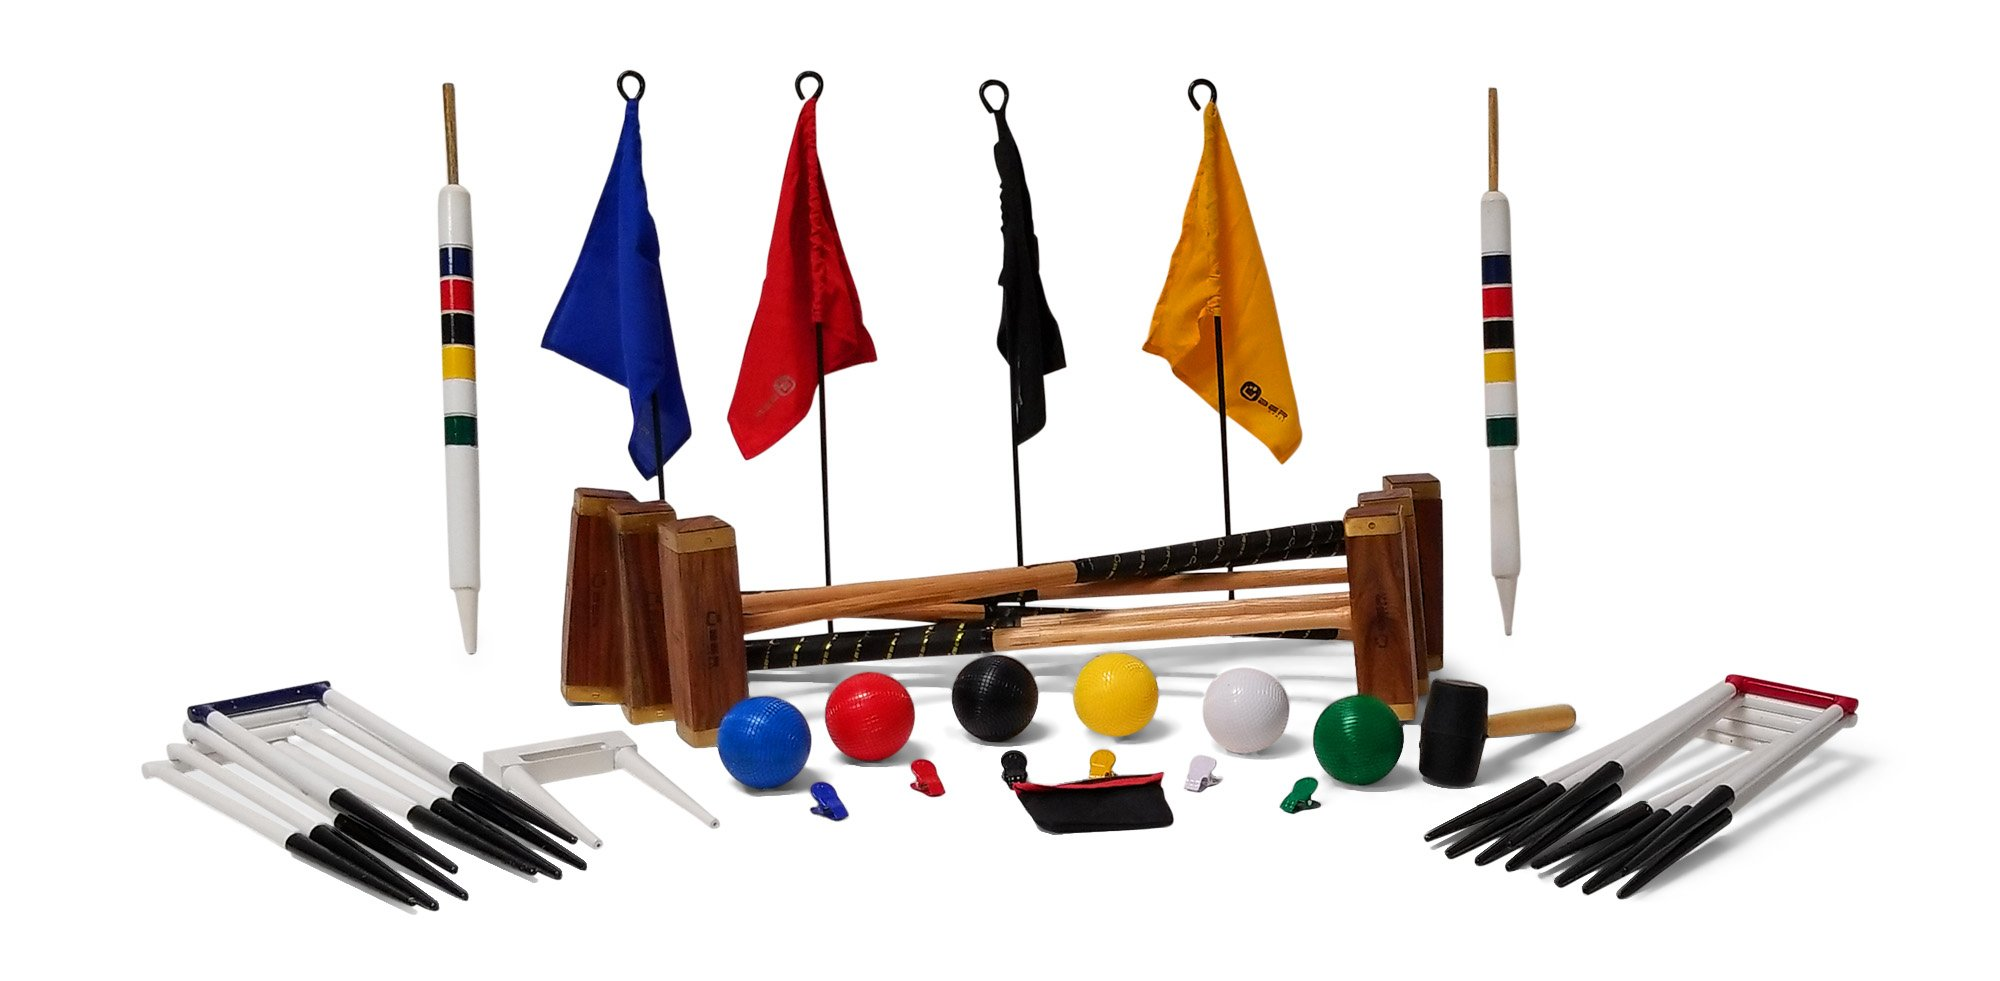 Uber Games 9 Wicket Croquet Set - Championship - 6 Player by Uber Games (Image #1)